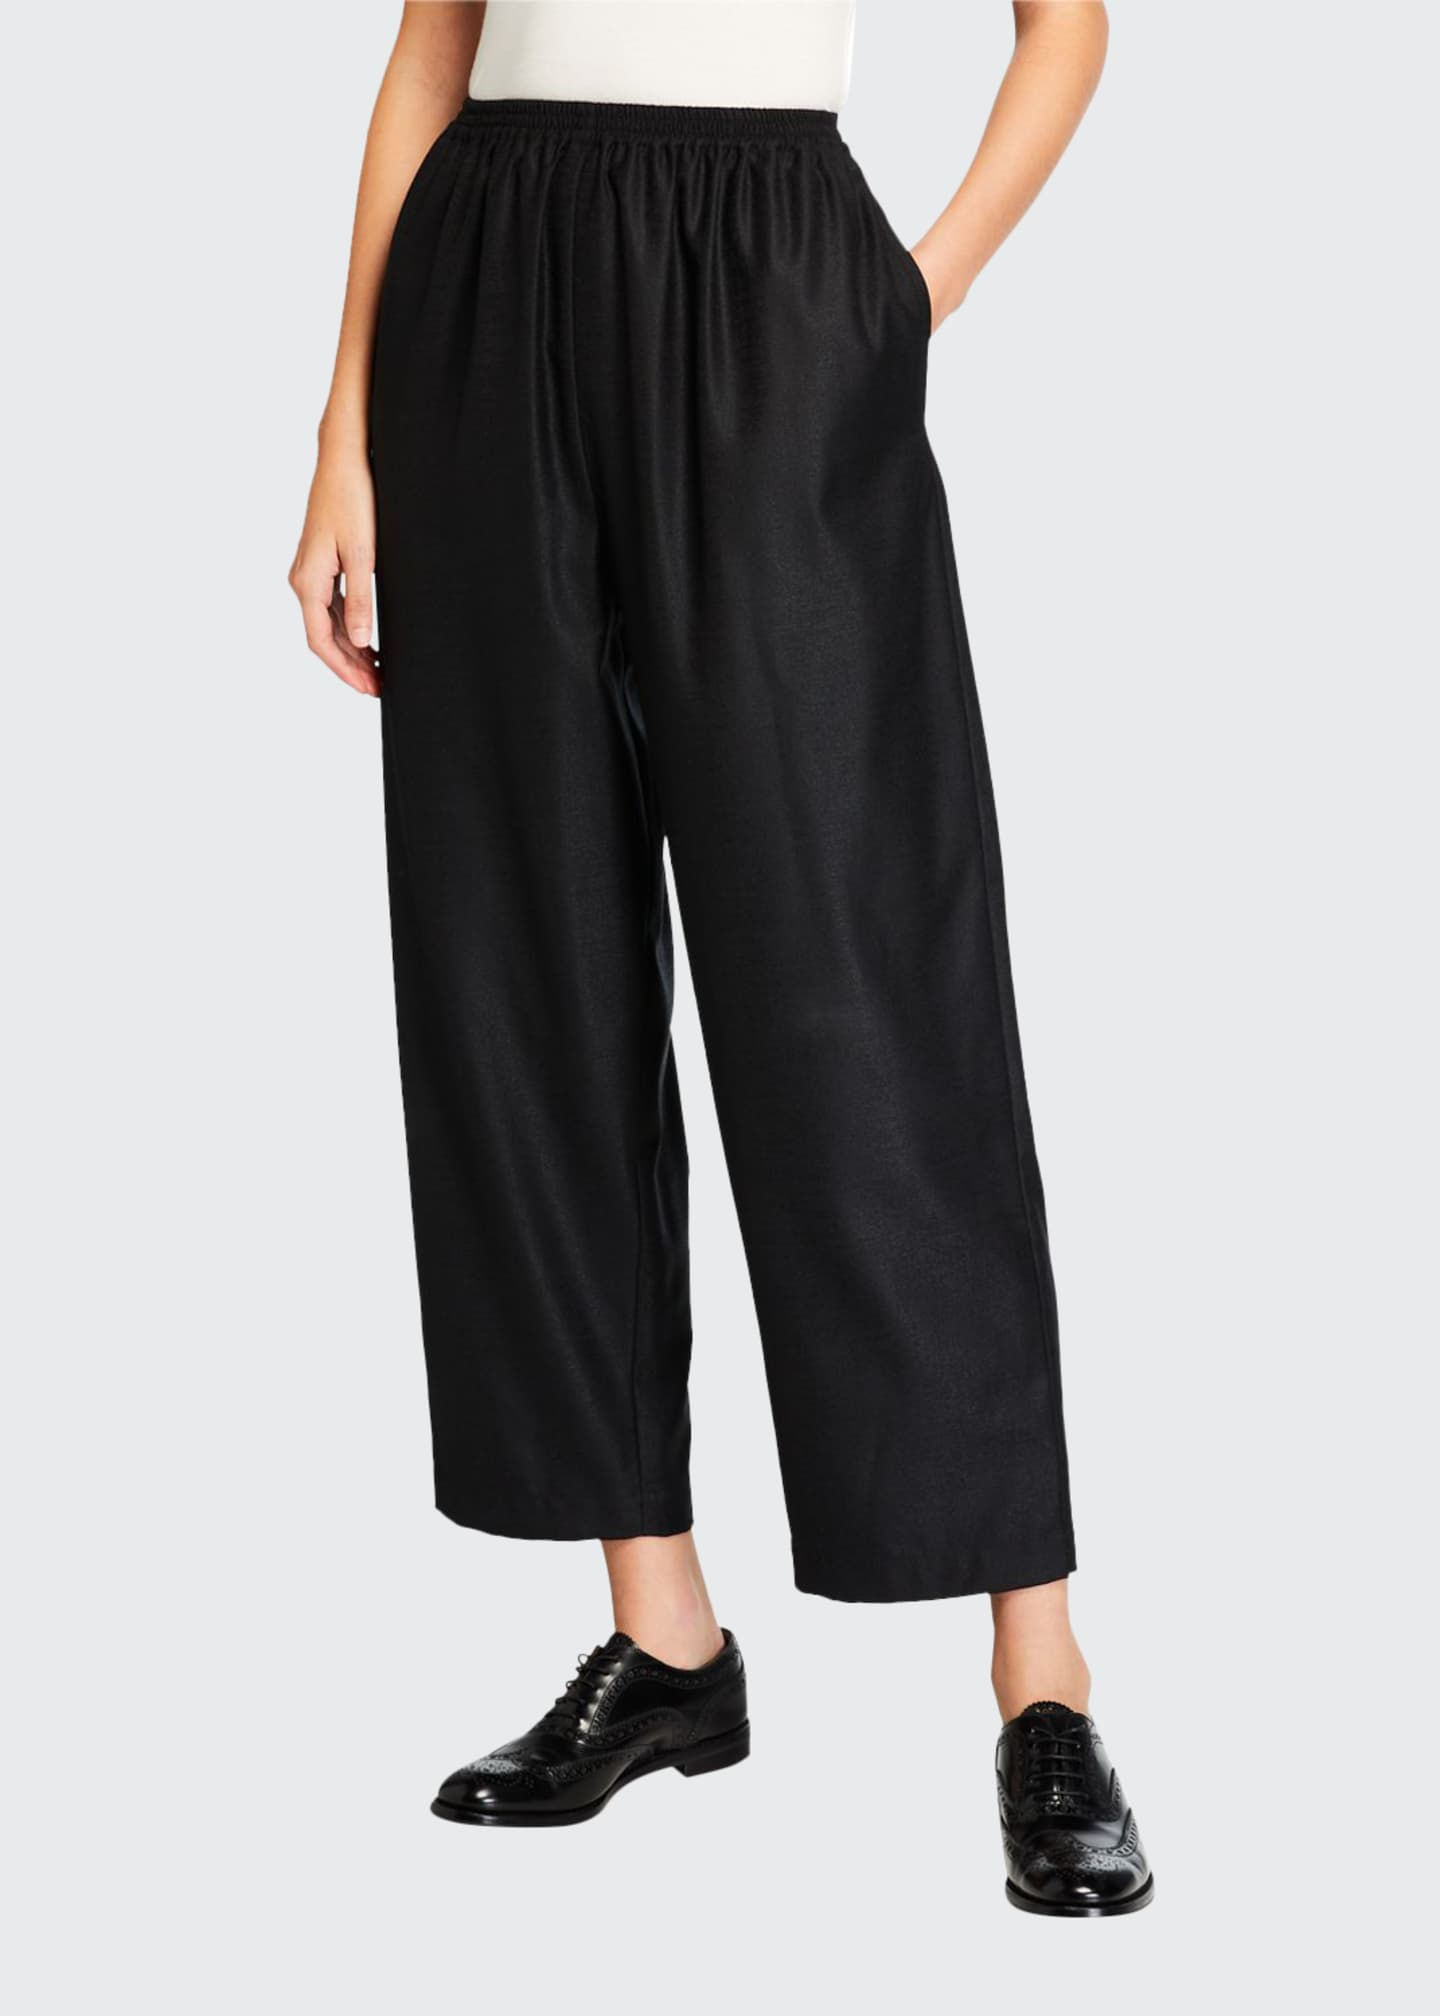 Eskandar Wool-Silk Japanese Trousers